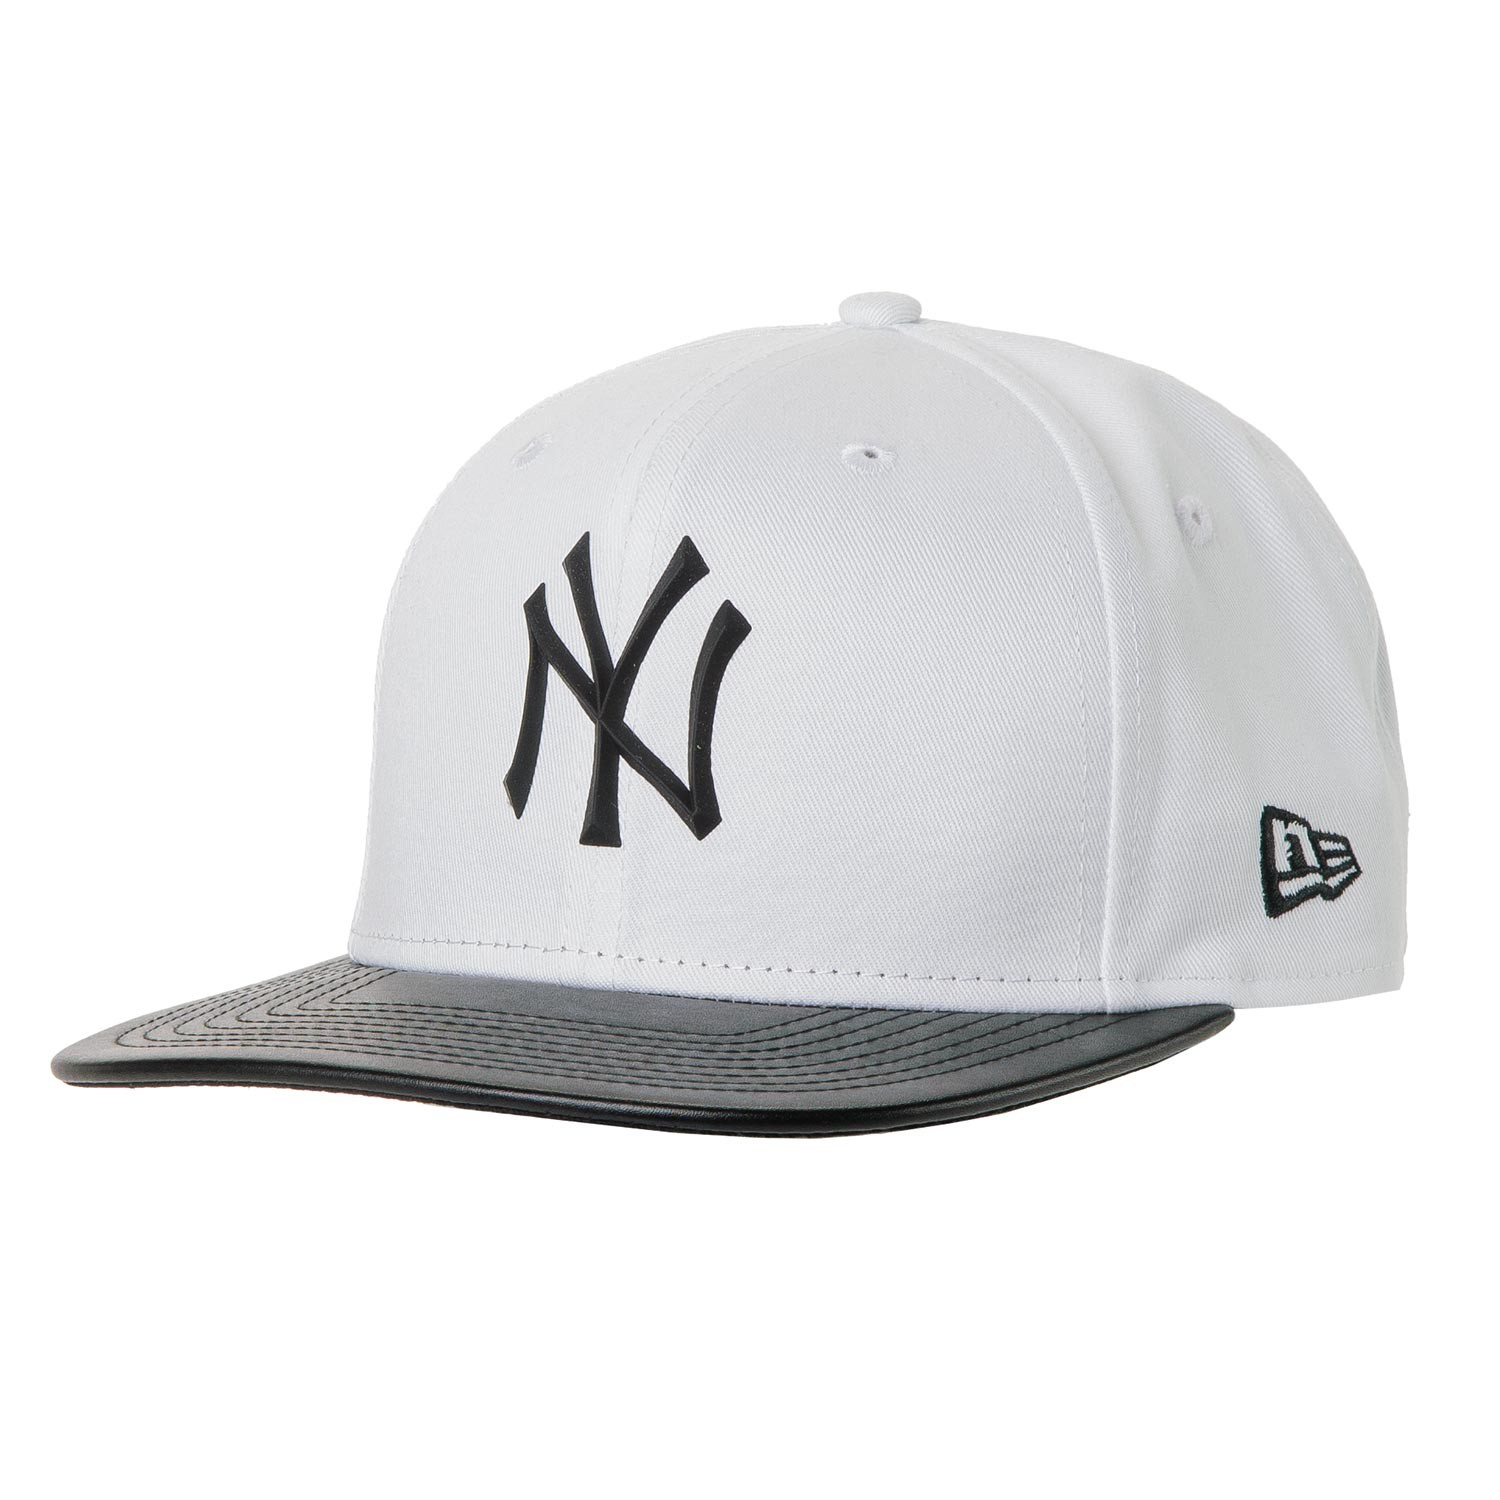 New Era New York Yankees 9Fifty Mlb Rubber Prime